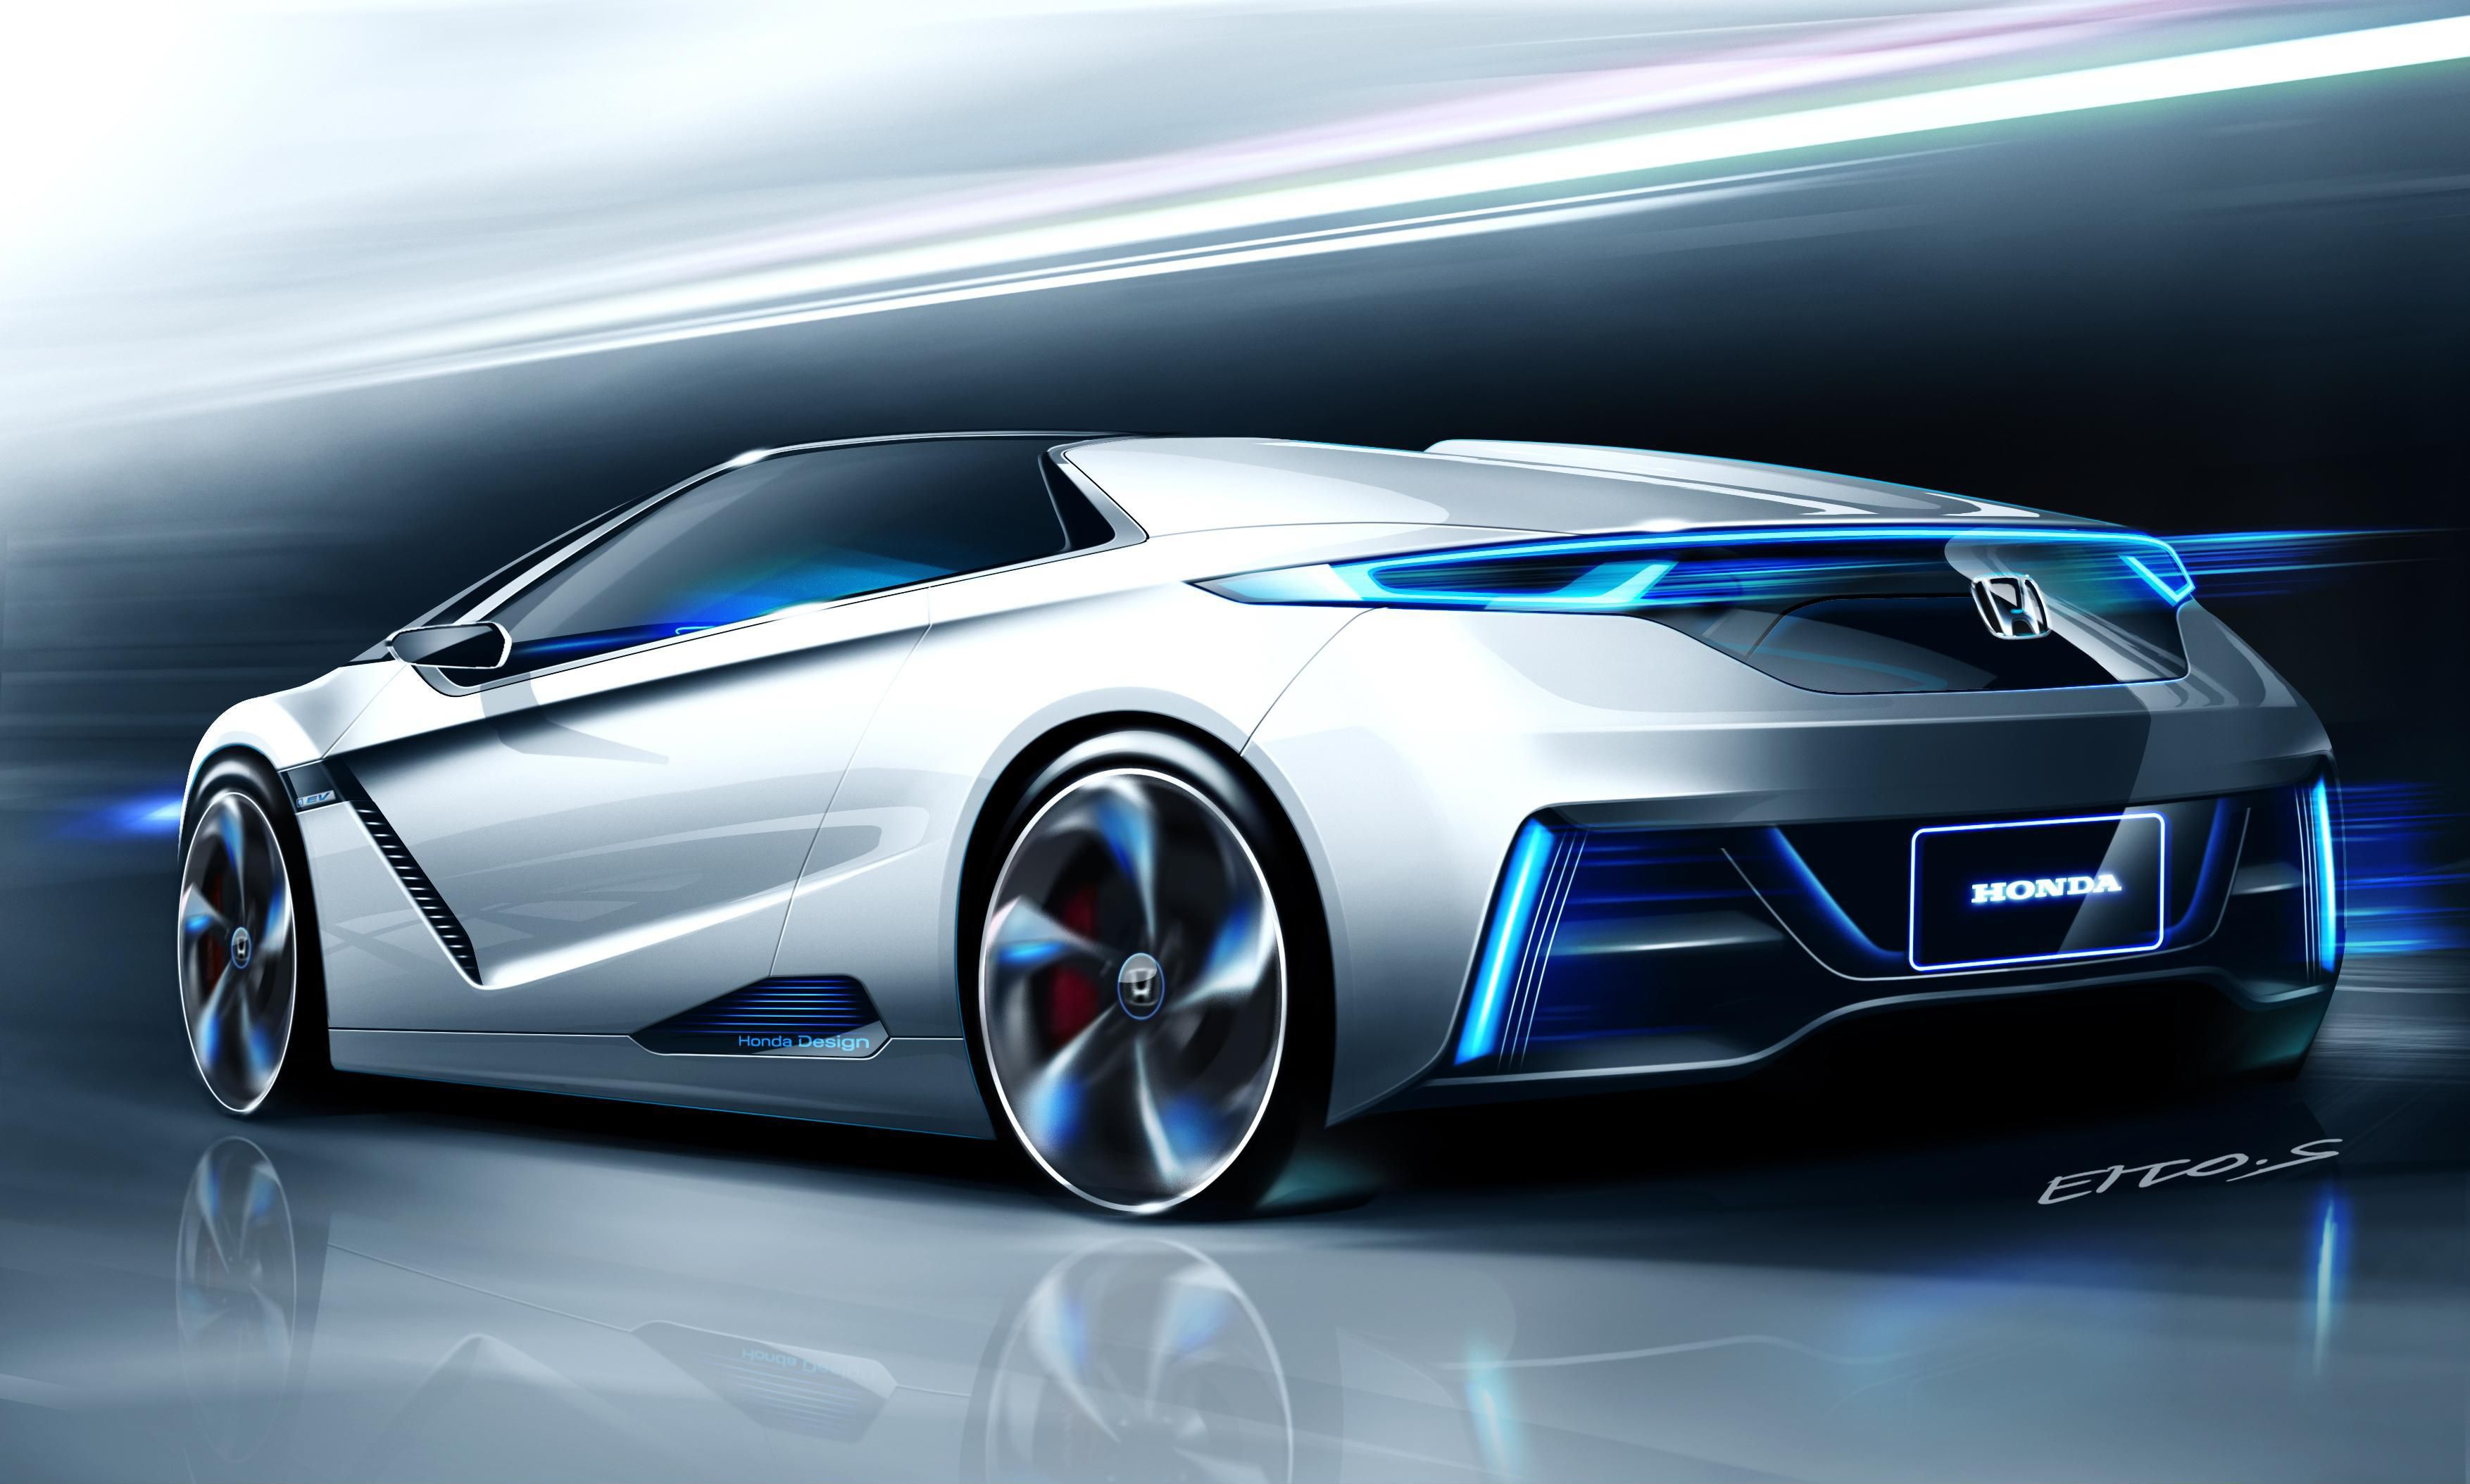 Honda Best Cars Hd Image High Quality Wallpaper For Mobile ...